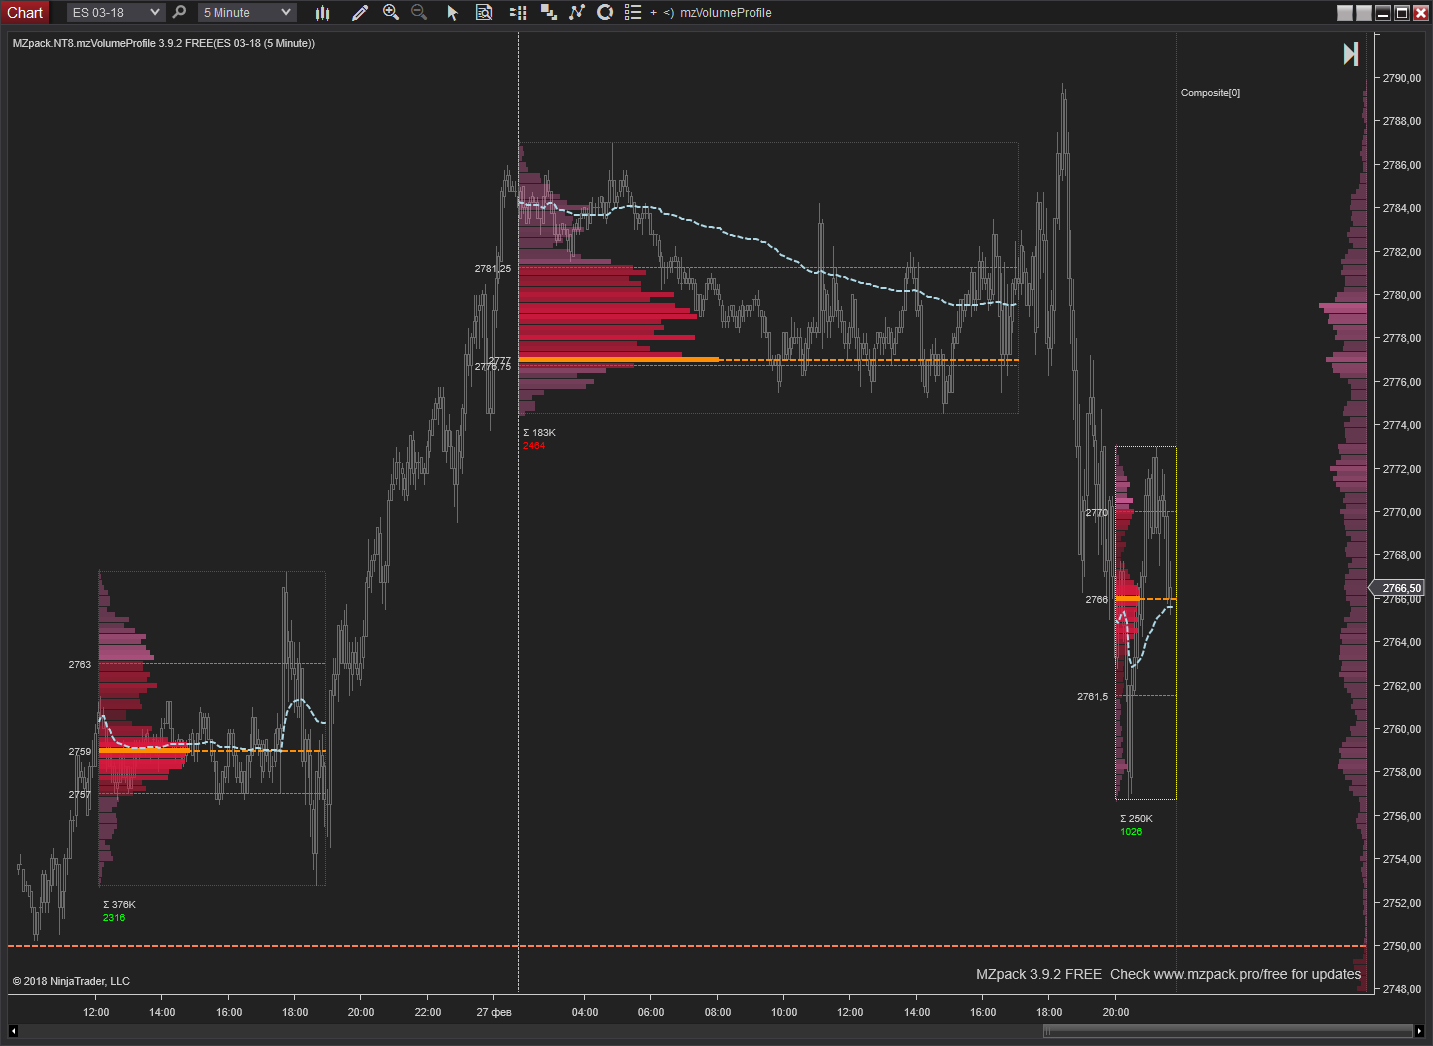 MZpack FREE (Volume Profile) for NinjaTrader 8 has been